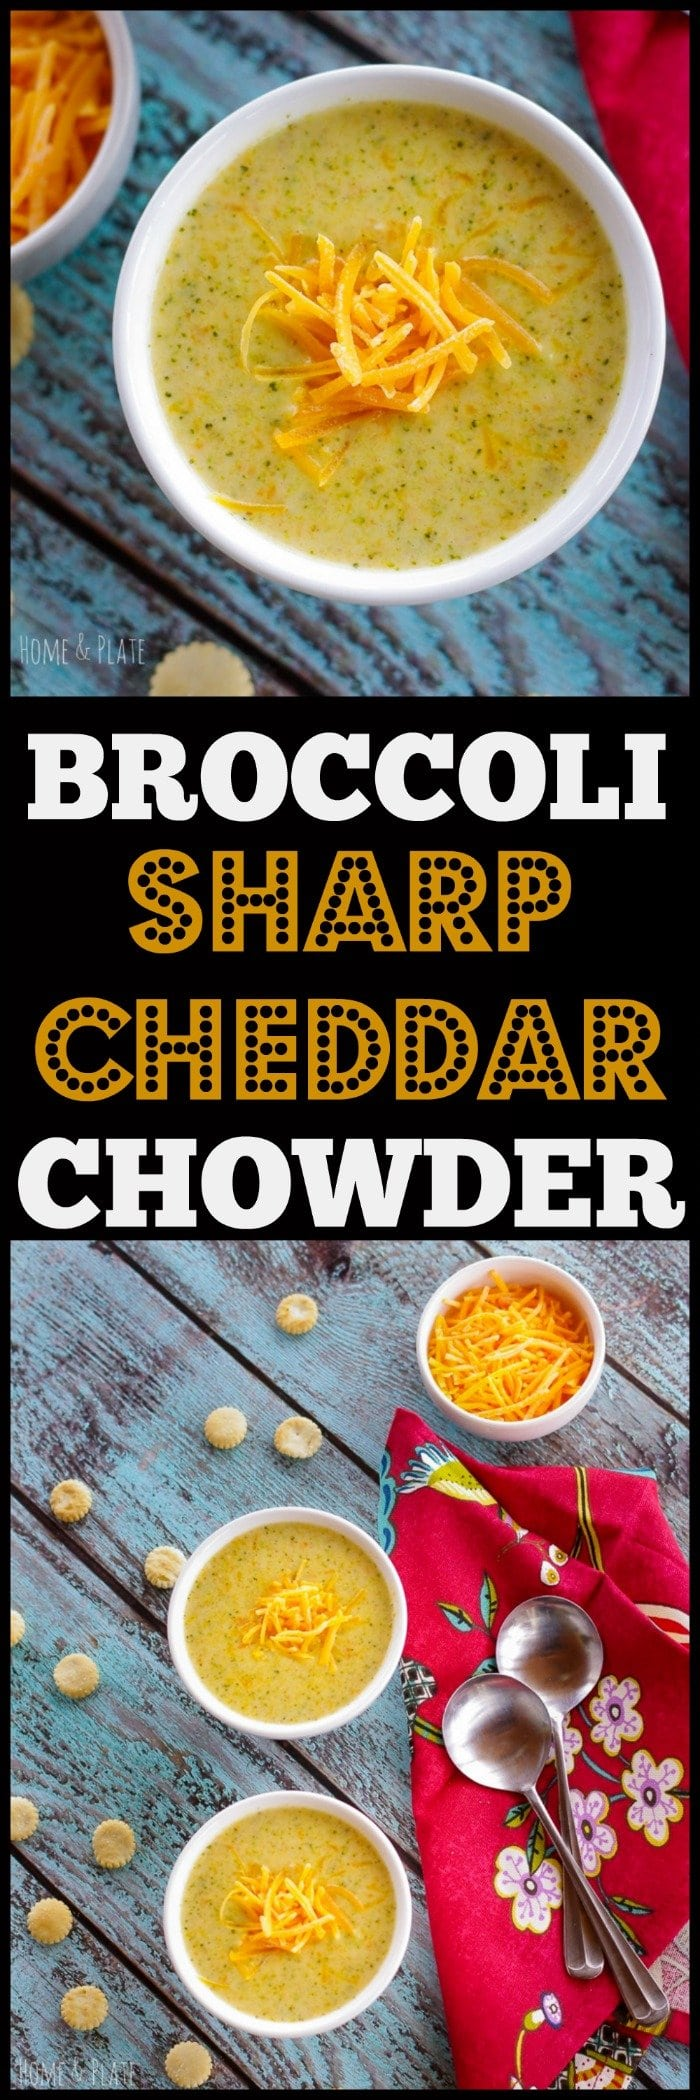 Broccoli Sharp Cheddar Chowder | www.homeandplate.com | Create a delicious sharp cheddar broccoli chowder in under 30 minutes with this super easy recipe.